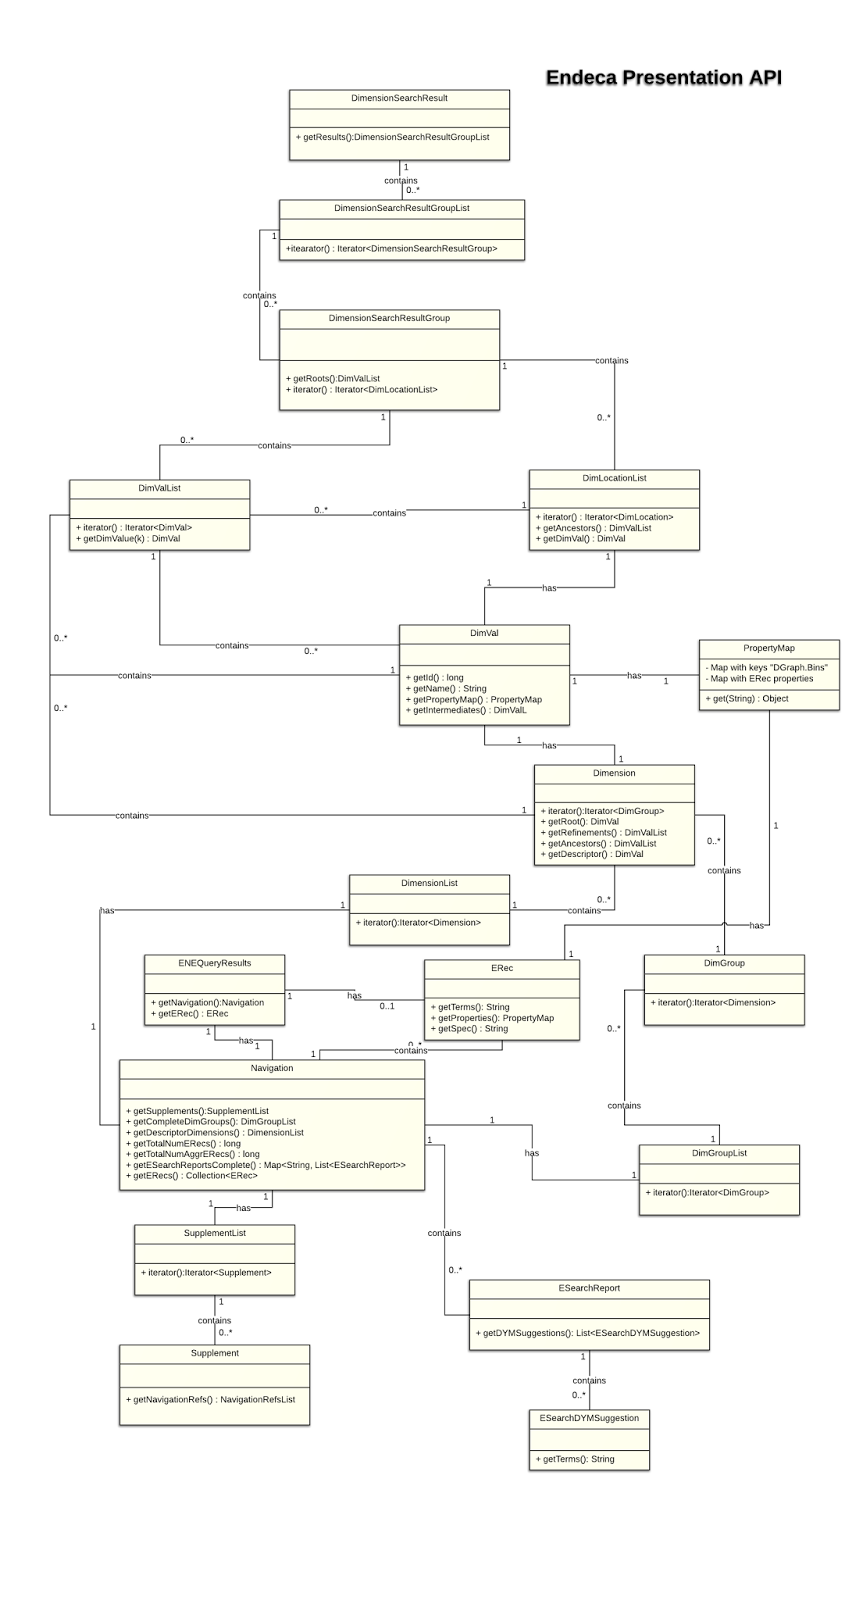 Endeca presentation api class diagram 10 99 following maven project is a endeca client poc project that i created to test endeca connection httpsbitbucketrpatnaiklsiendeca client poc ccuart